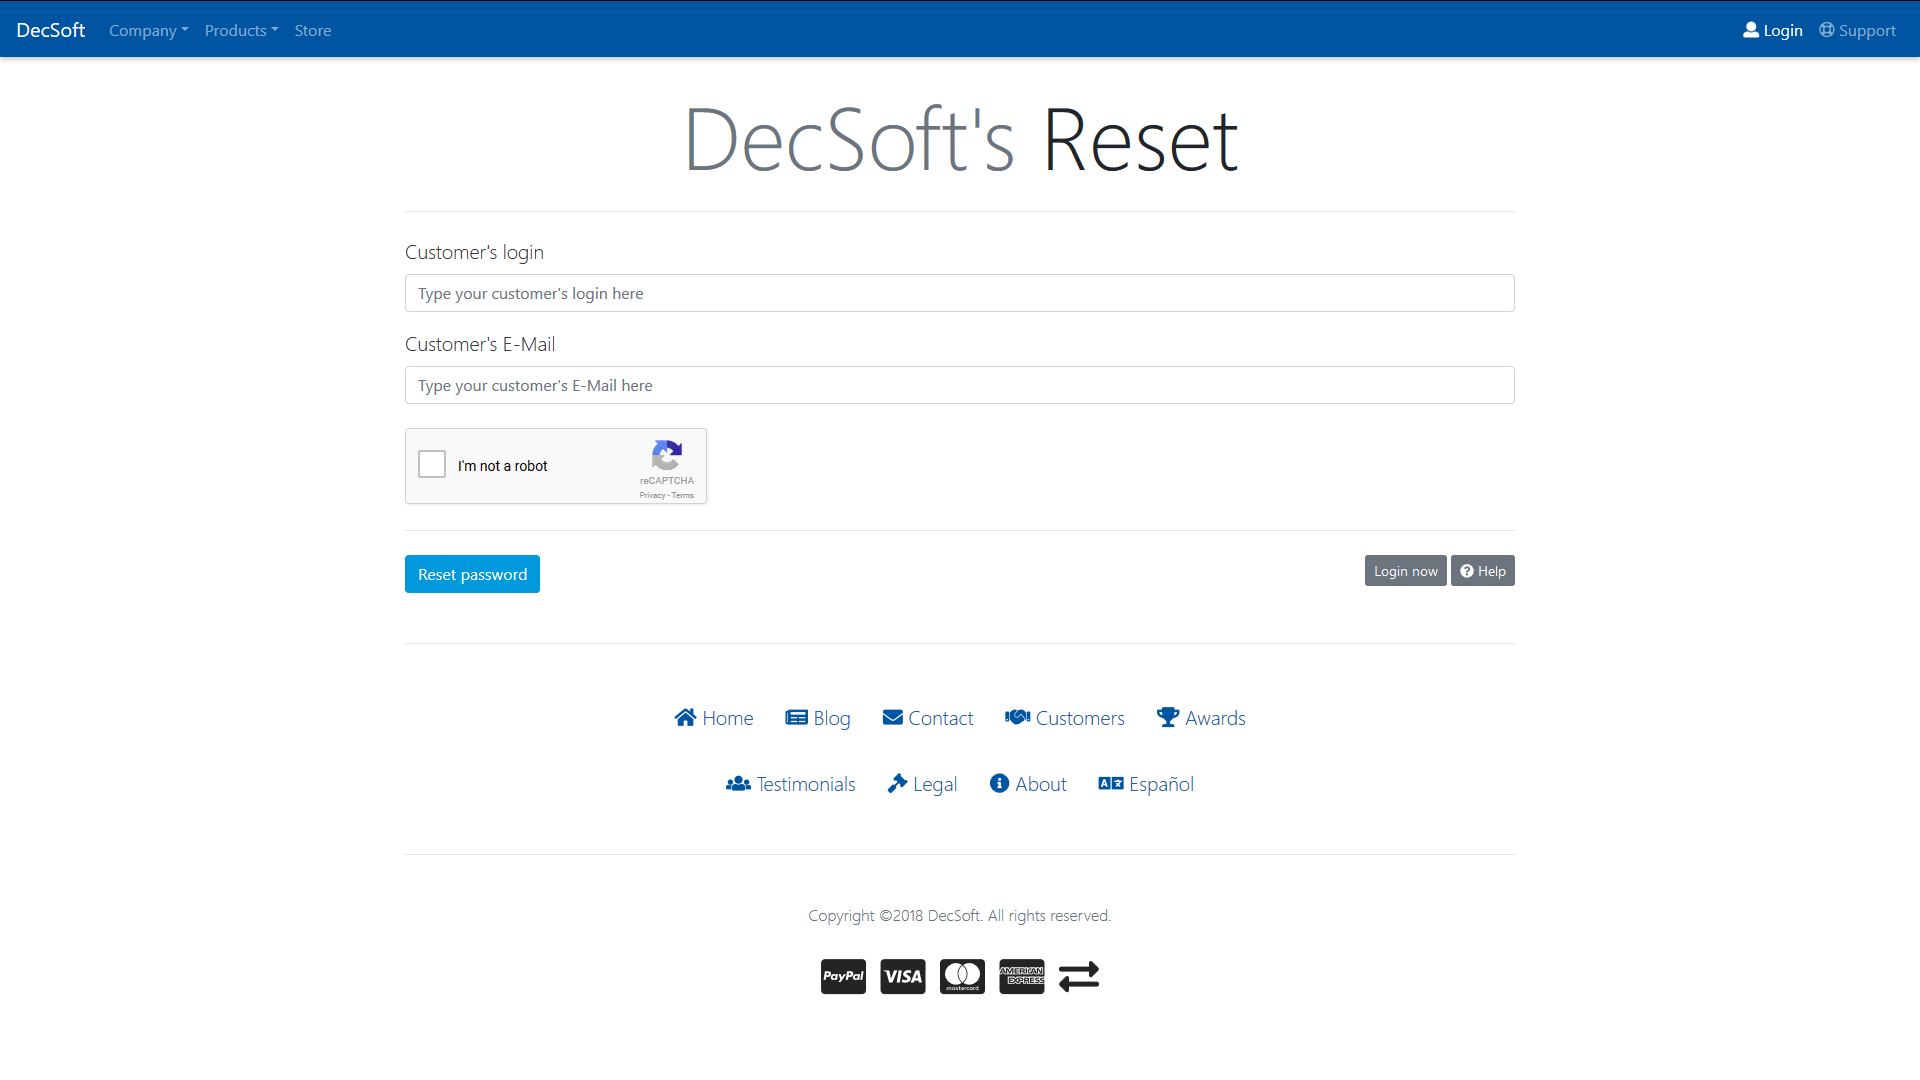 The DecSoft's customer's login form